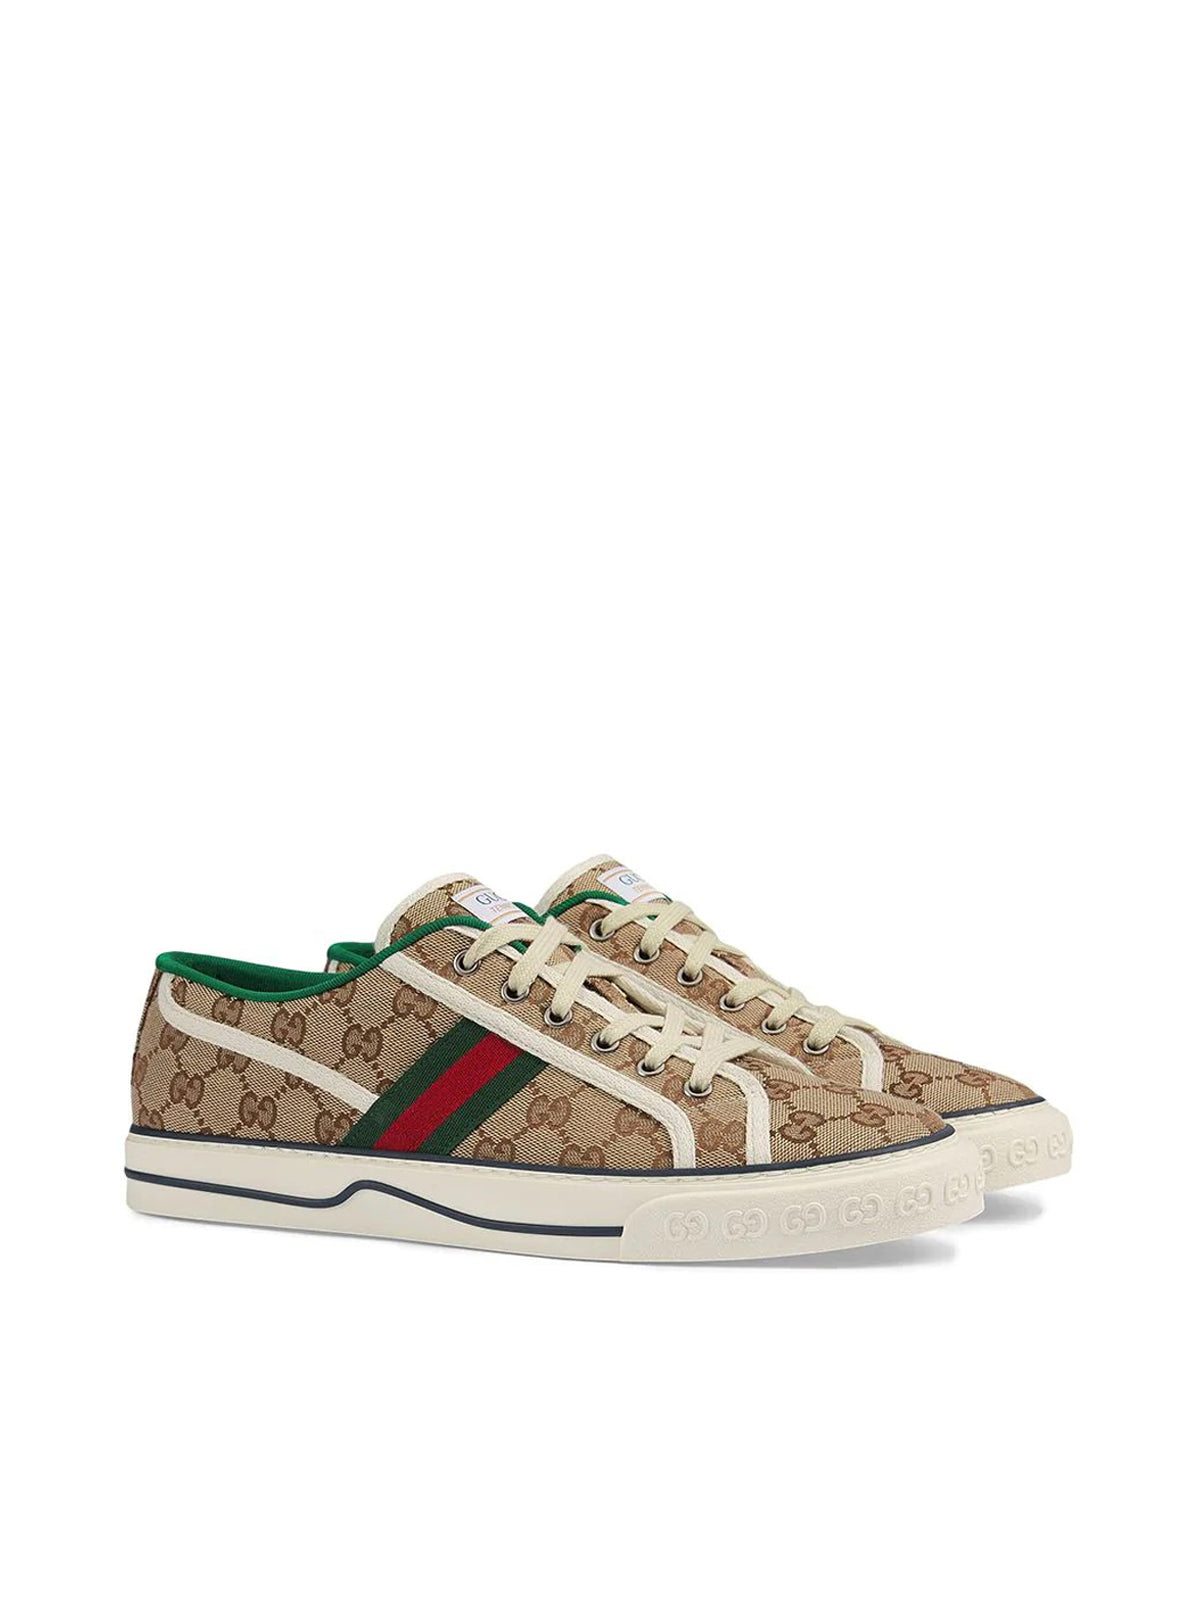 Sneakers GG Gucci 1977